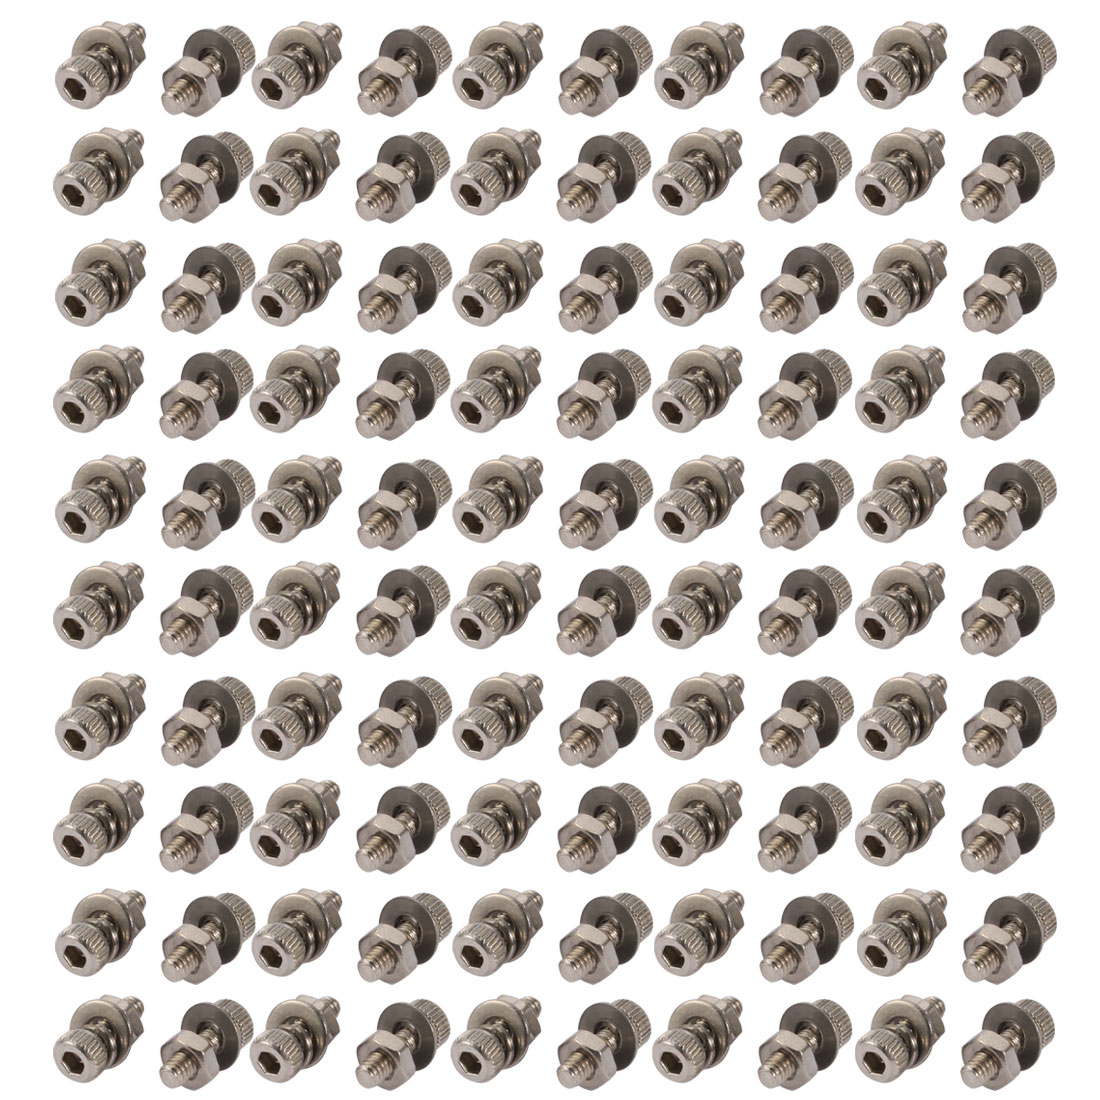 100pcs M2x6mm 304 Stainless Steel Knurled Hex Socket Head Bolts w Nut Washer